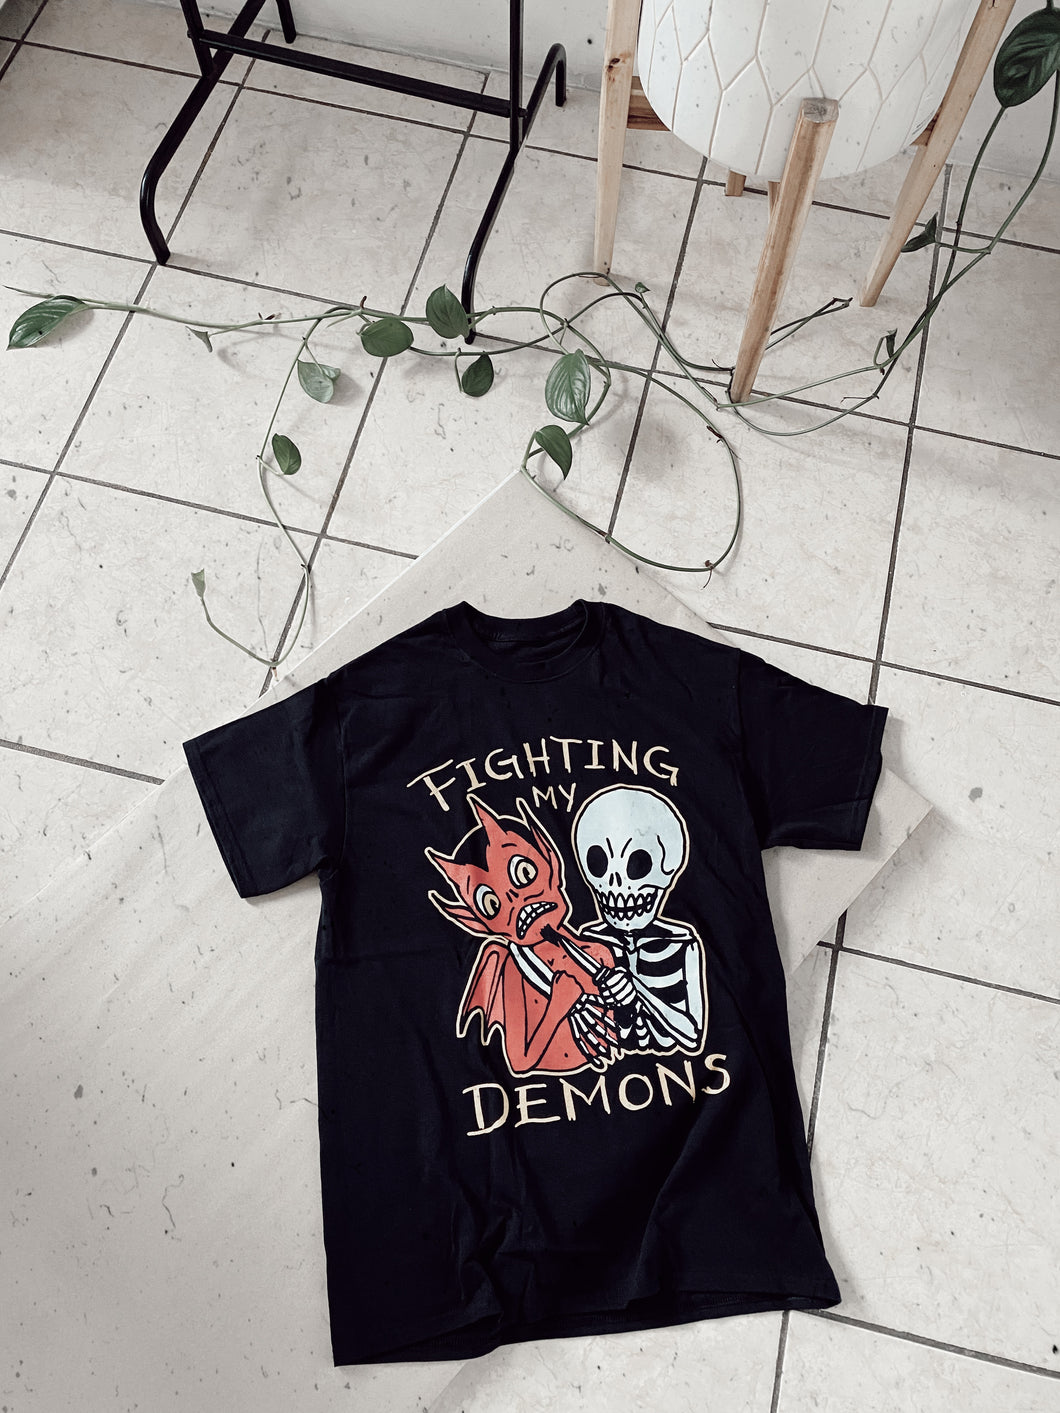 FIGHTING MY DEMONS T-shirt